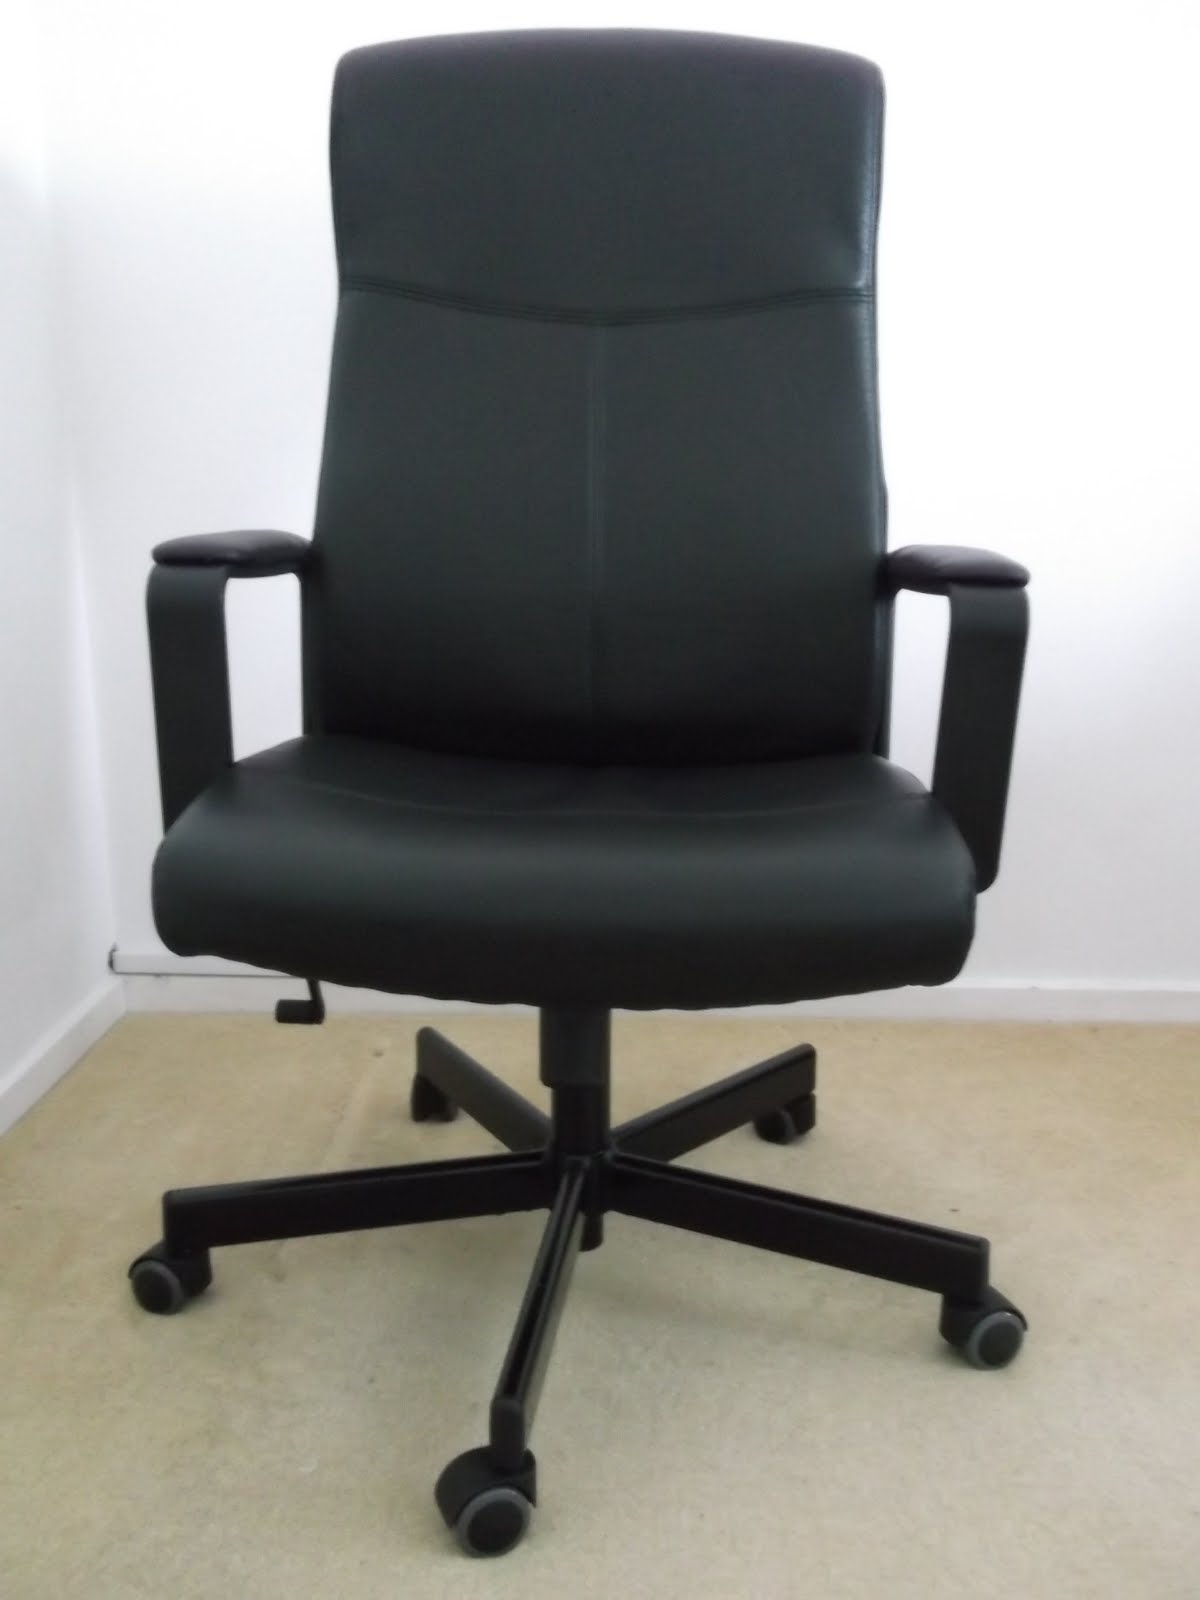 office furniture ikea uk. ikea chairs office. malkolm office swivel chair t furniture uk i